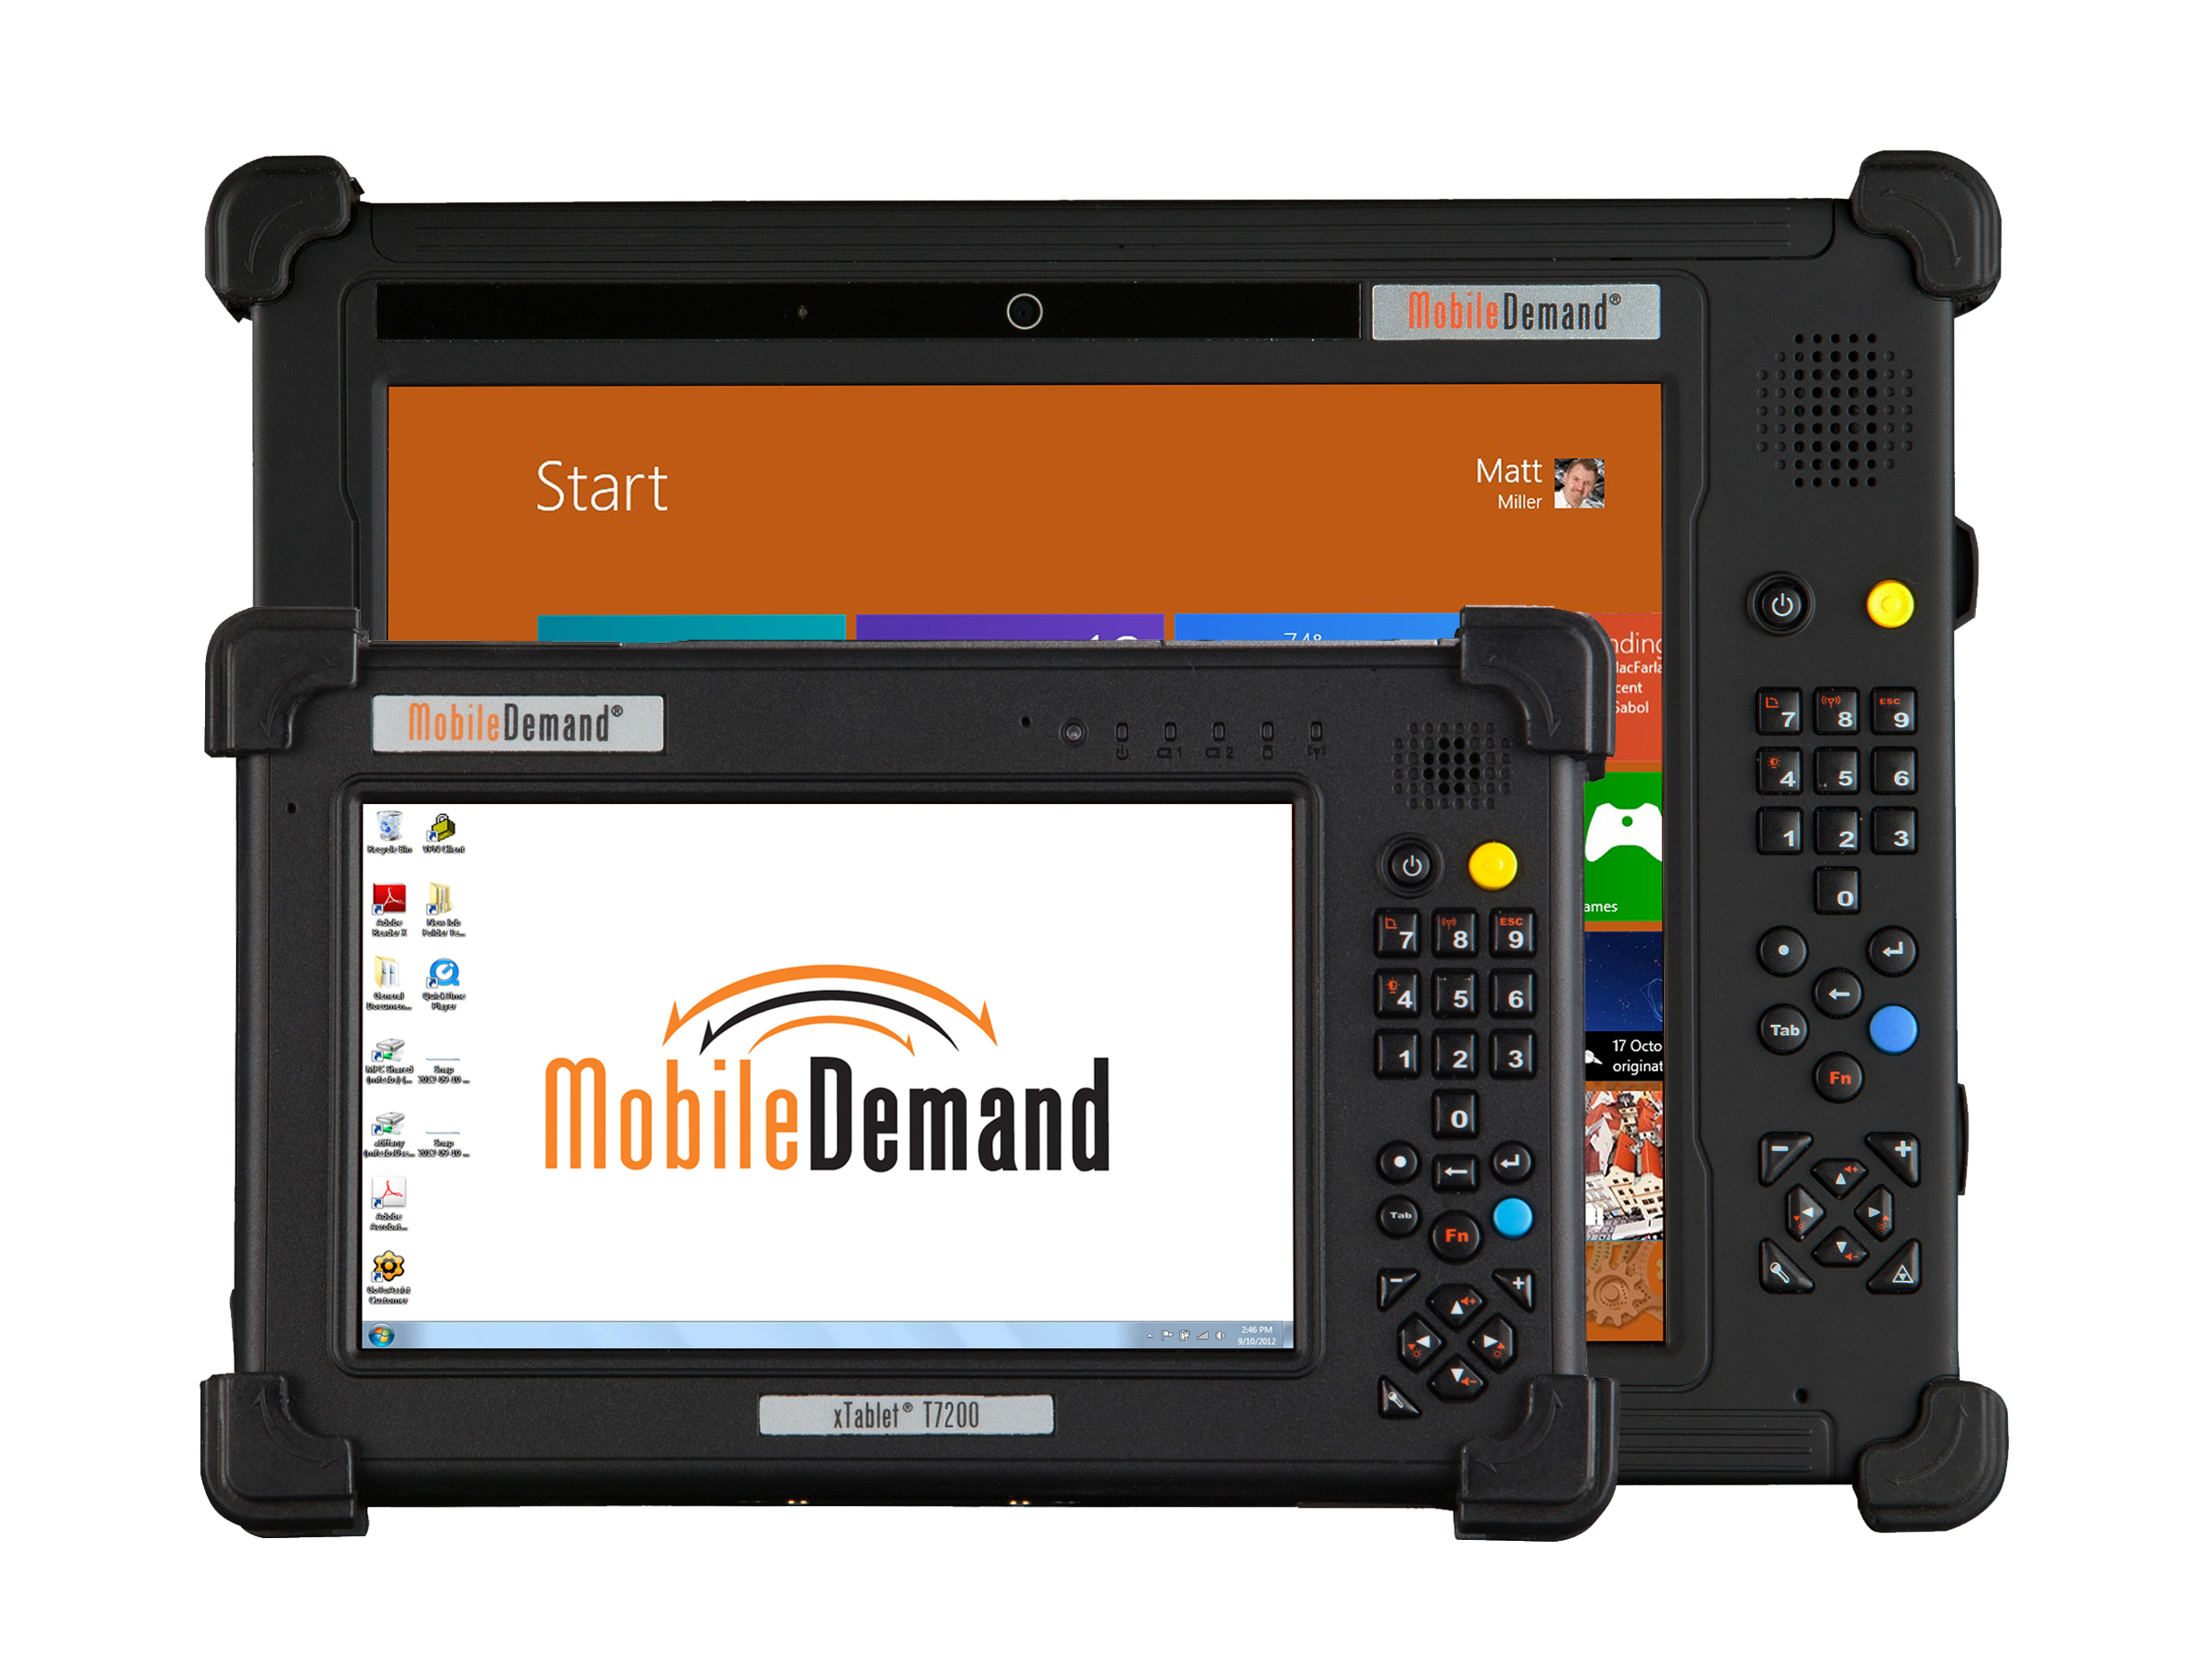 Mobiledemand Offers Discount To Forklift Mounted Rugged